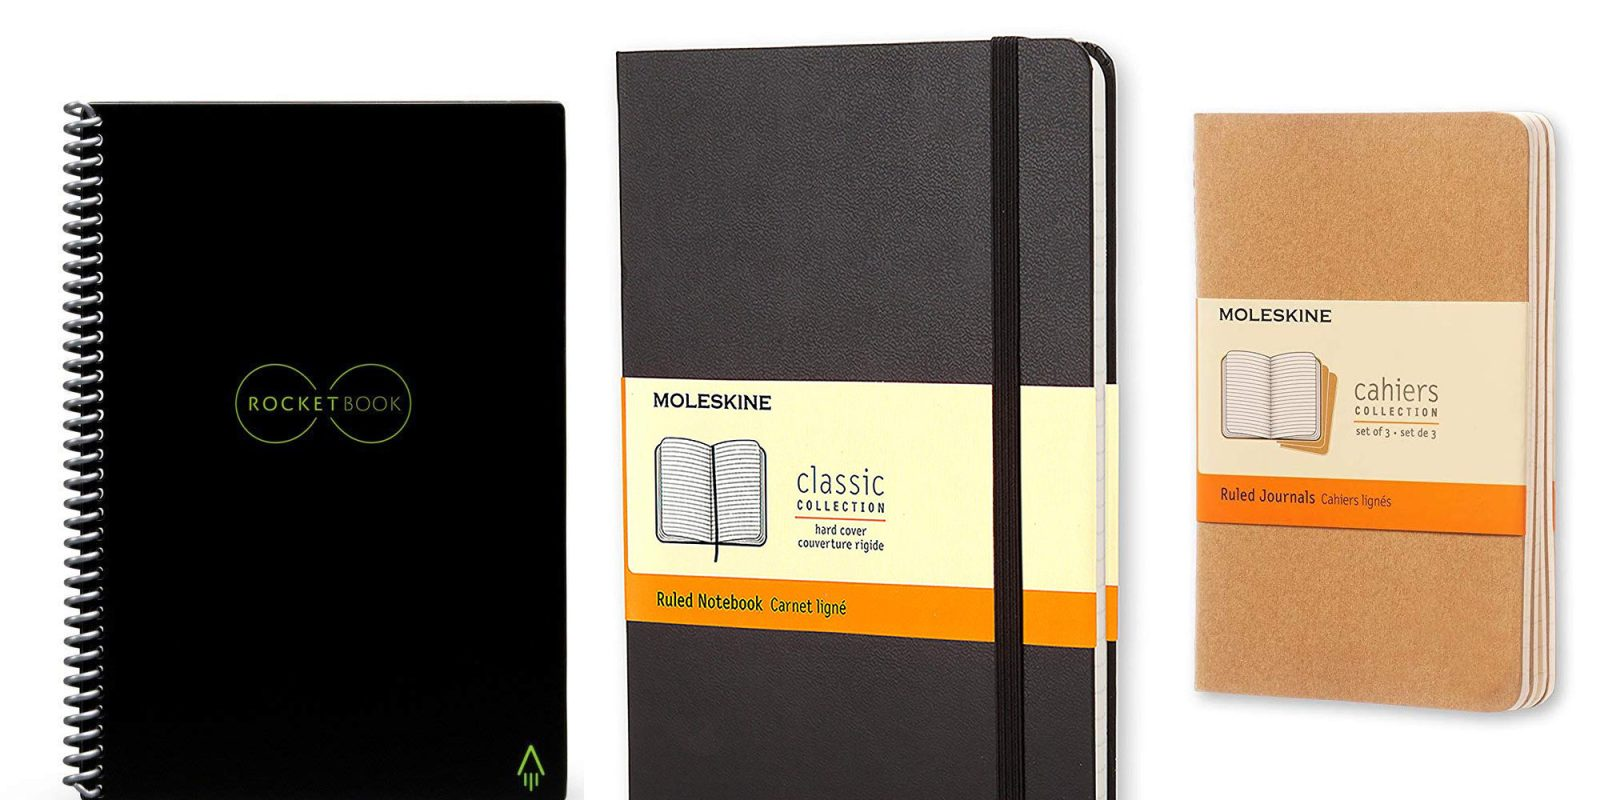 Moleskine/Rocketbook notebooks up to 50% off: Smart, reusable, more from $10